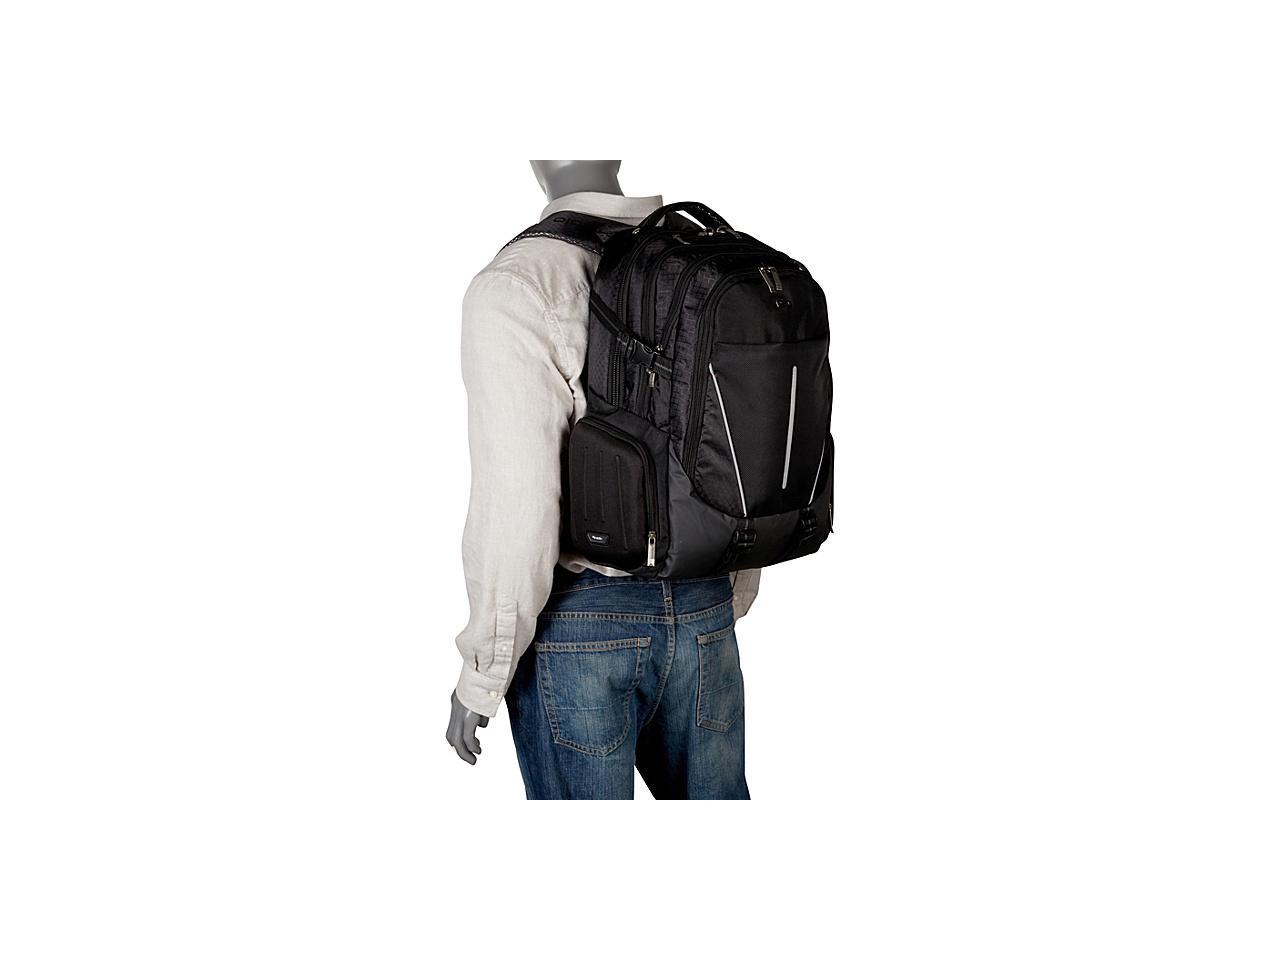 Replacement For PARTS-ACV700-4 ACTIVE BACKPACK